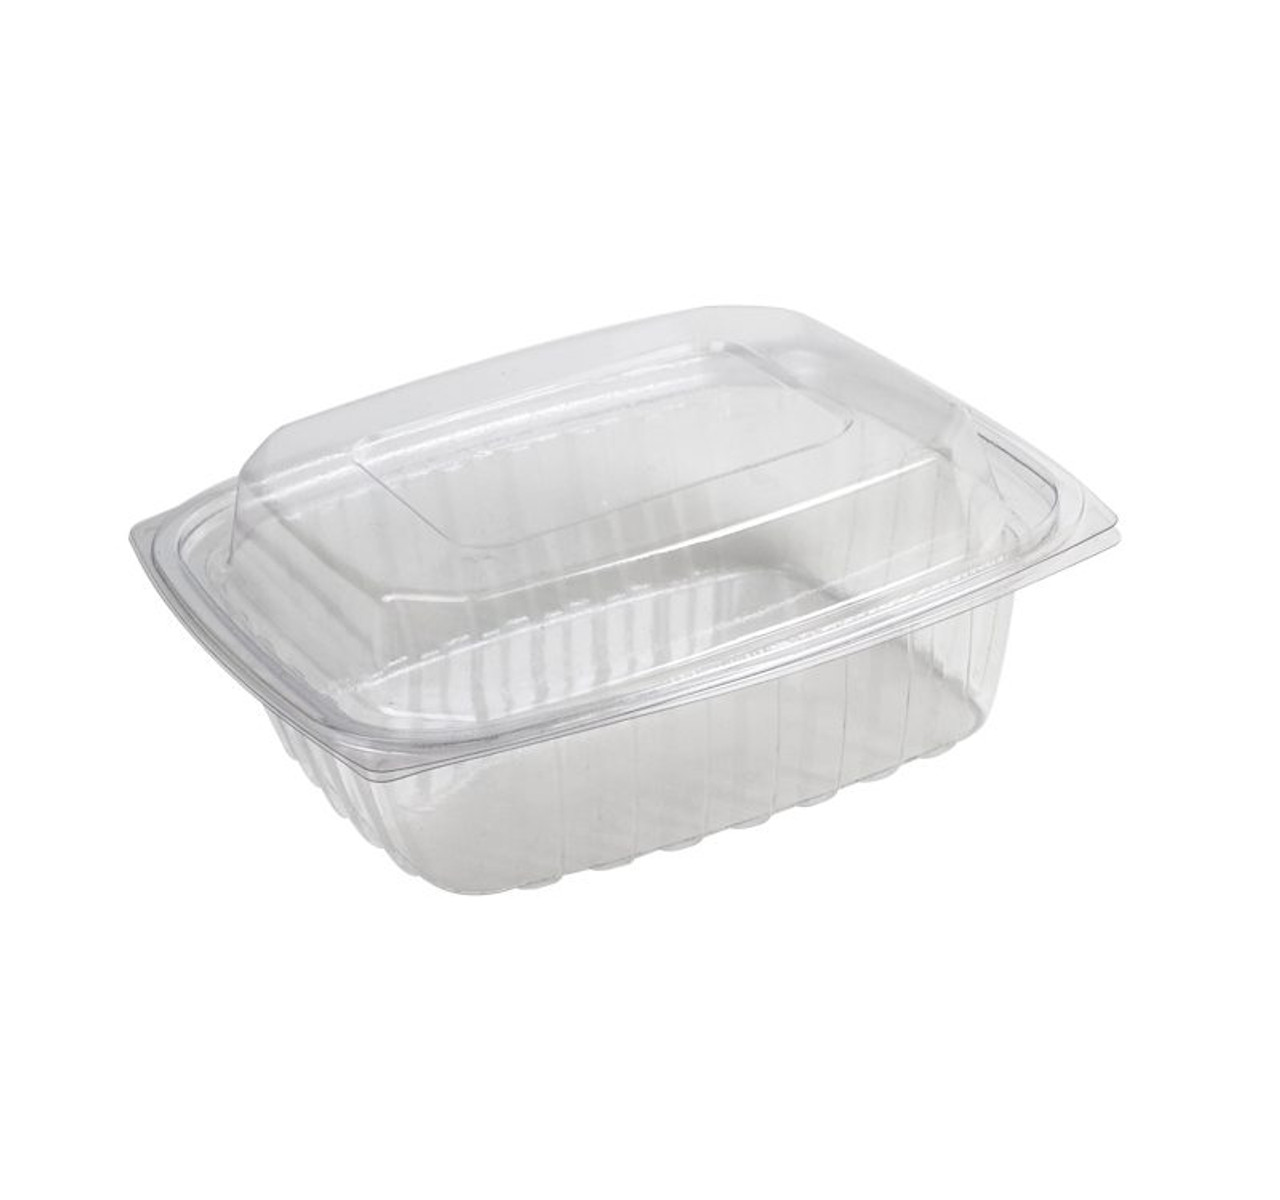 32oz Deli container with dome lid